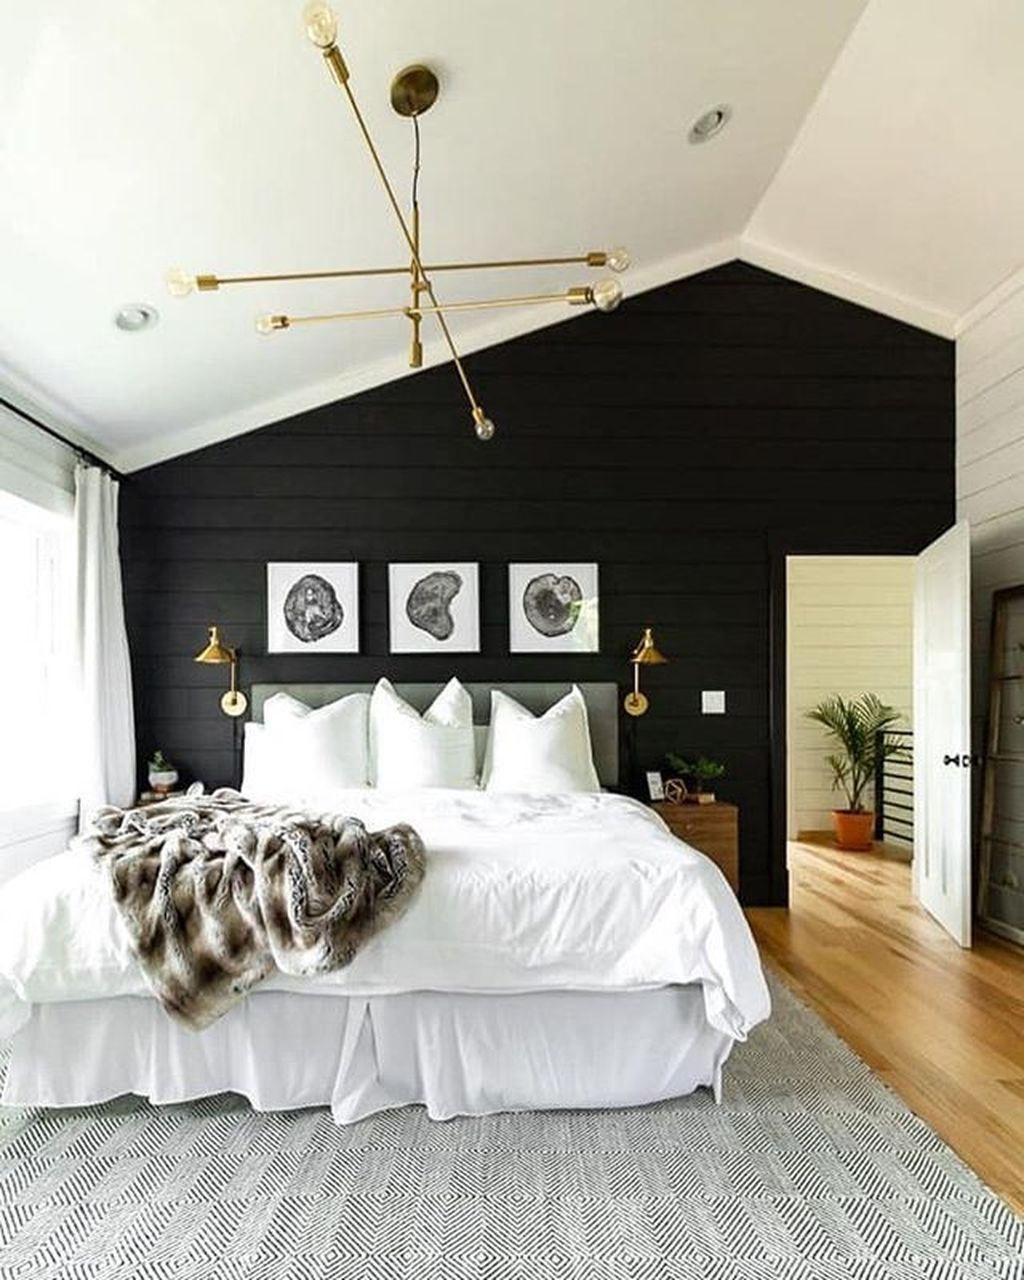 44 Stunning White Master Bedroom Ideas Match For Any Home Design